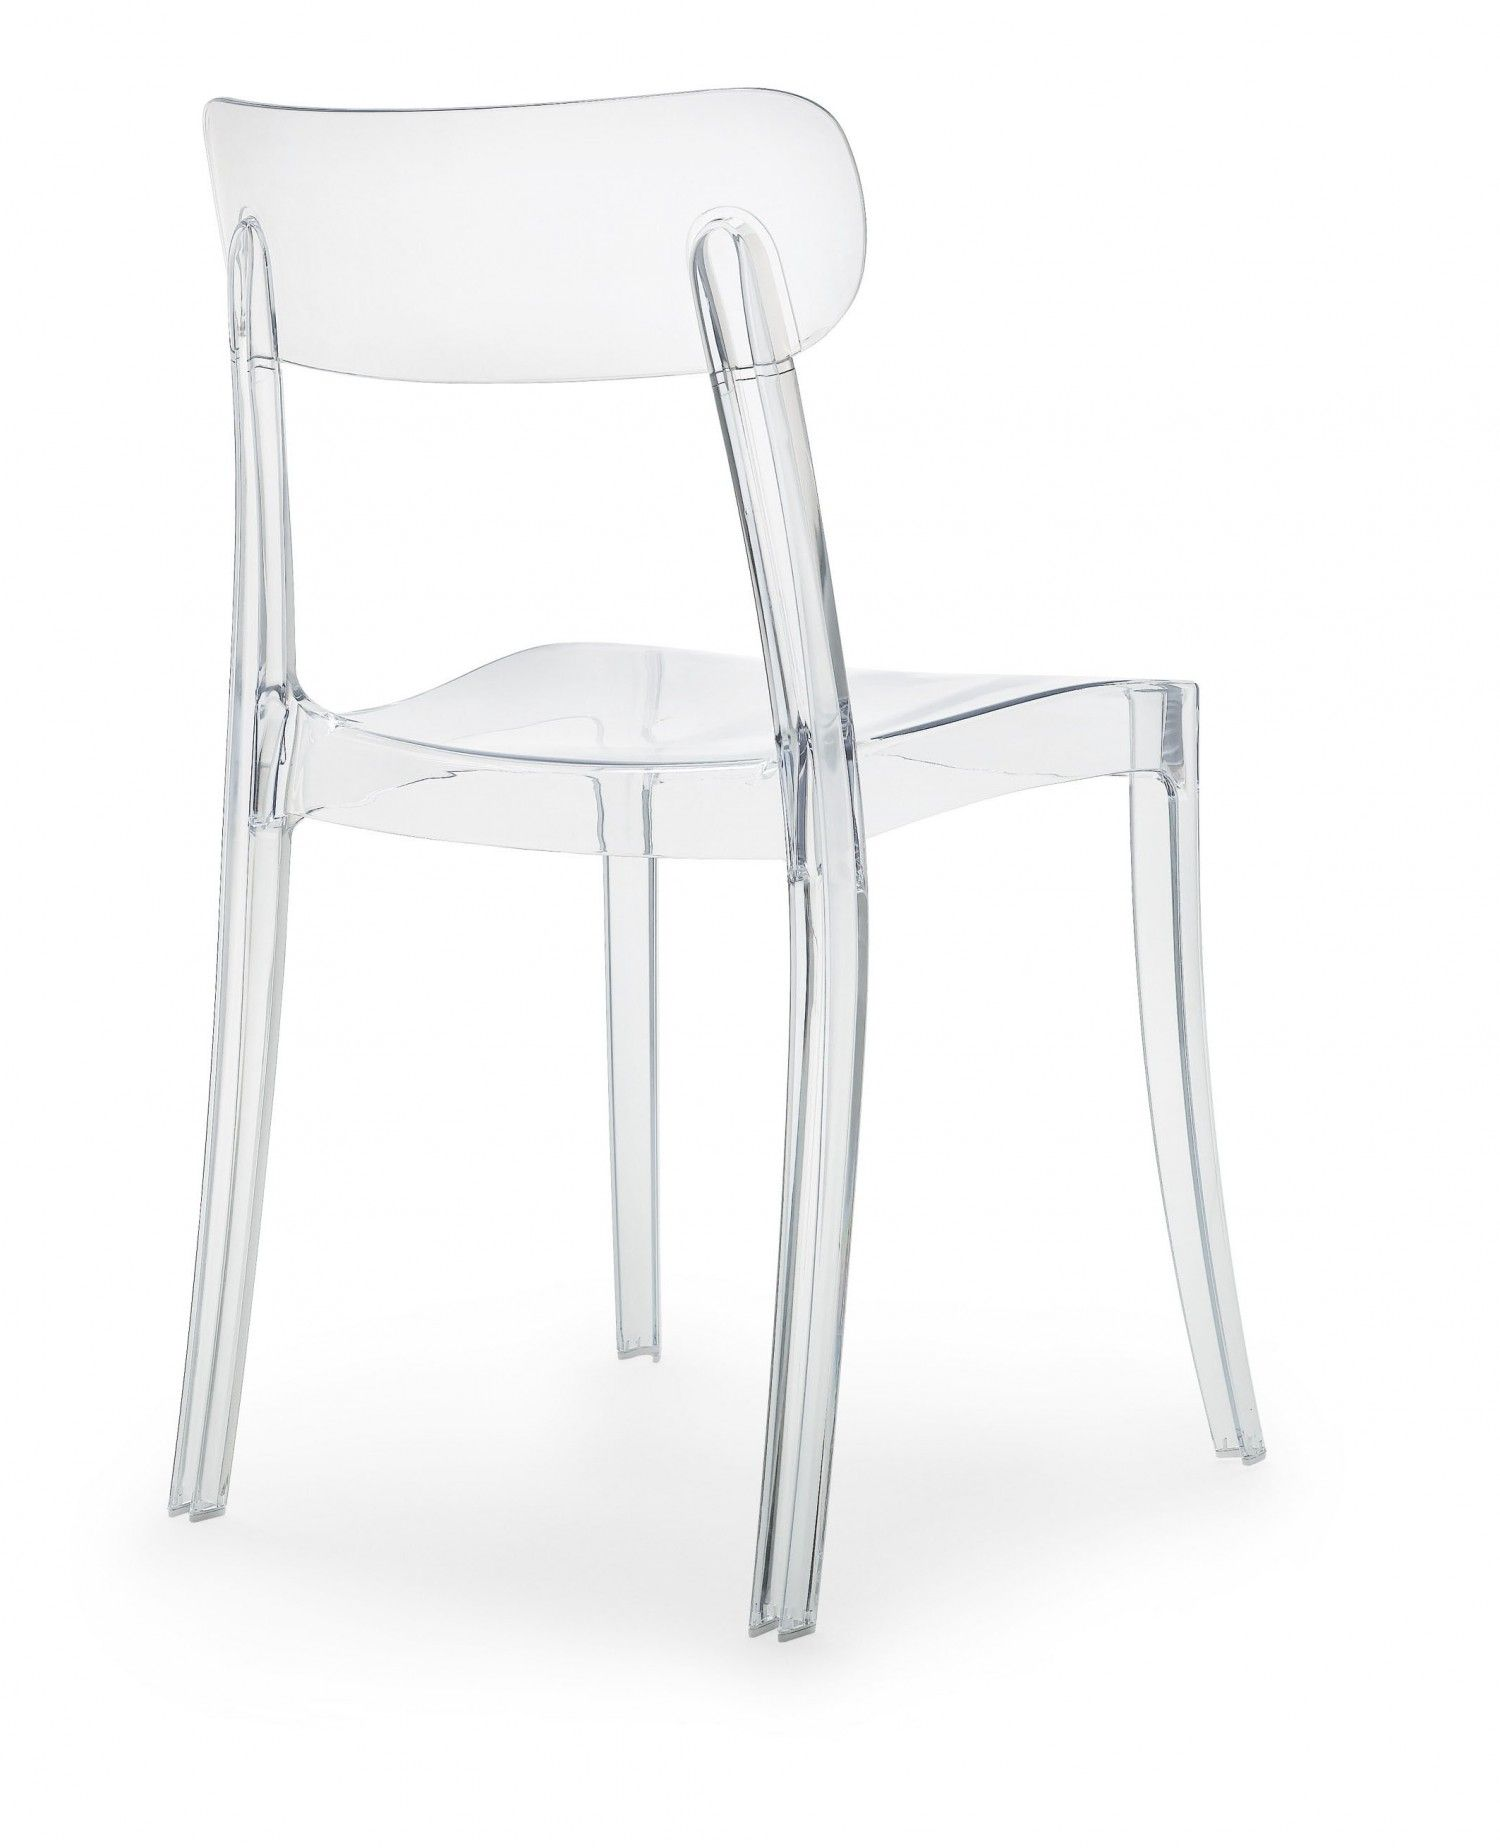 Shop Transparent Polycarbonate Novo Dining Chair Set And Other Modern Contemporary Home Office Furniture Browse Our Selection Of Task